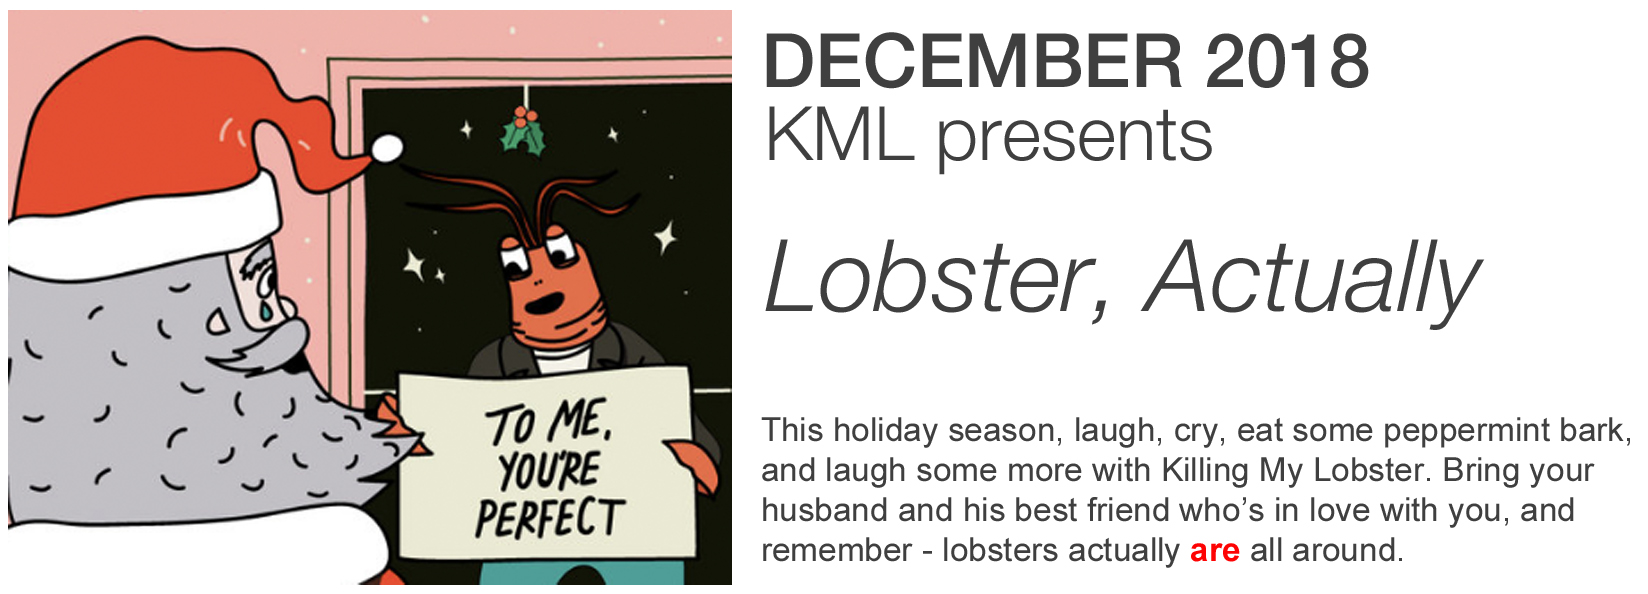 Lobster Actually write up.jpg